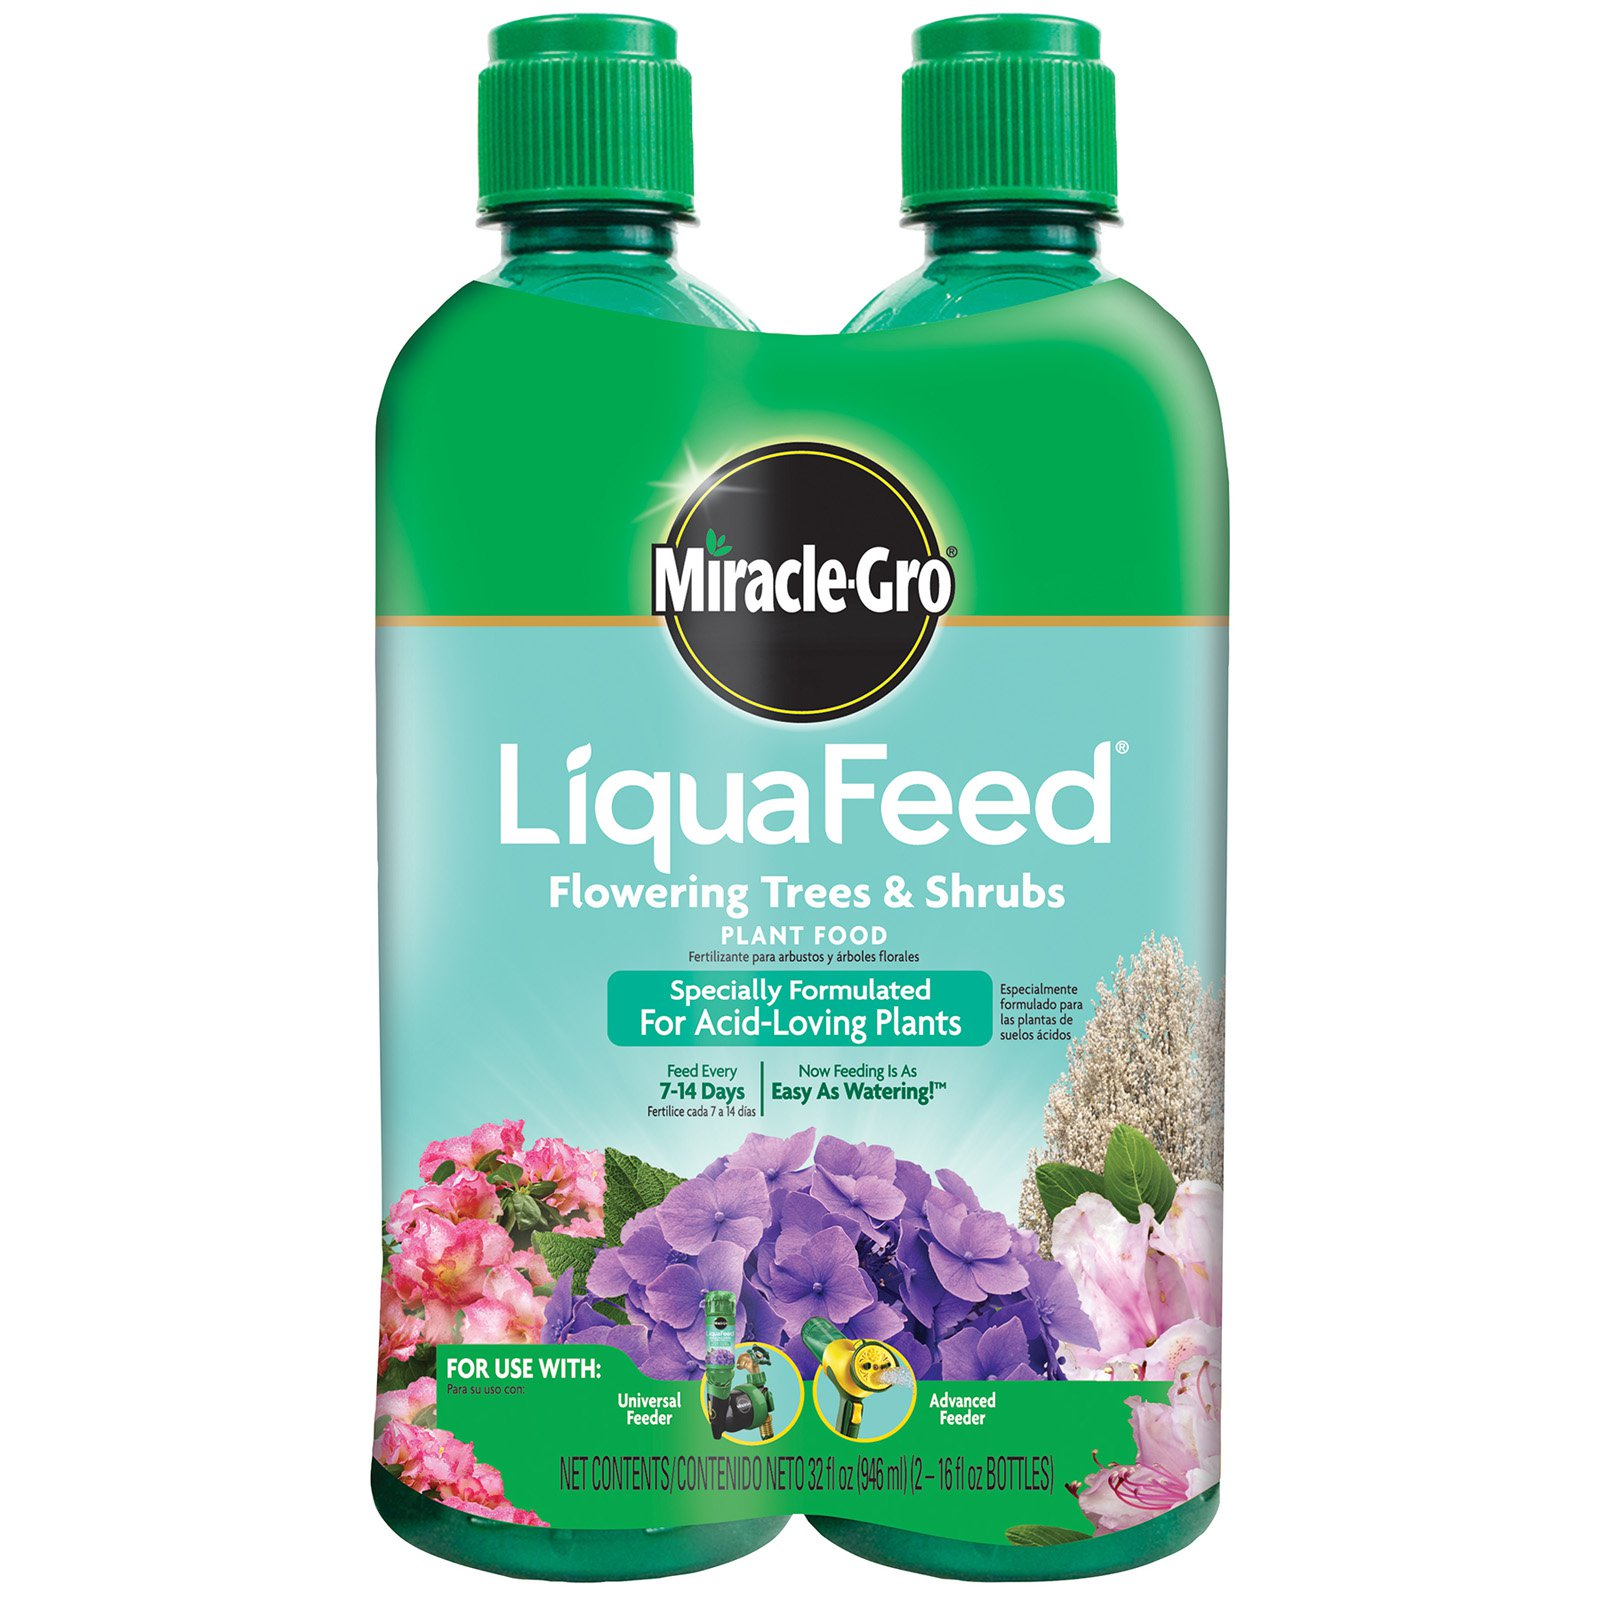 Miracle Gro 16 oz. LiquaFeed Flowering Trees & Scrubs Plant Food - 2 Pack